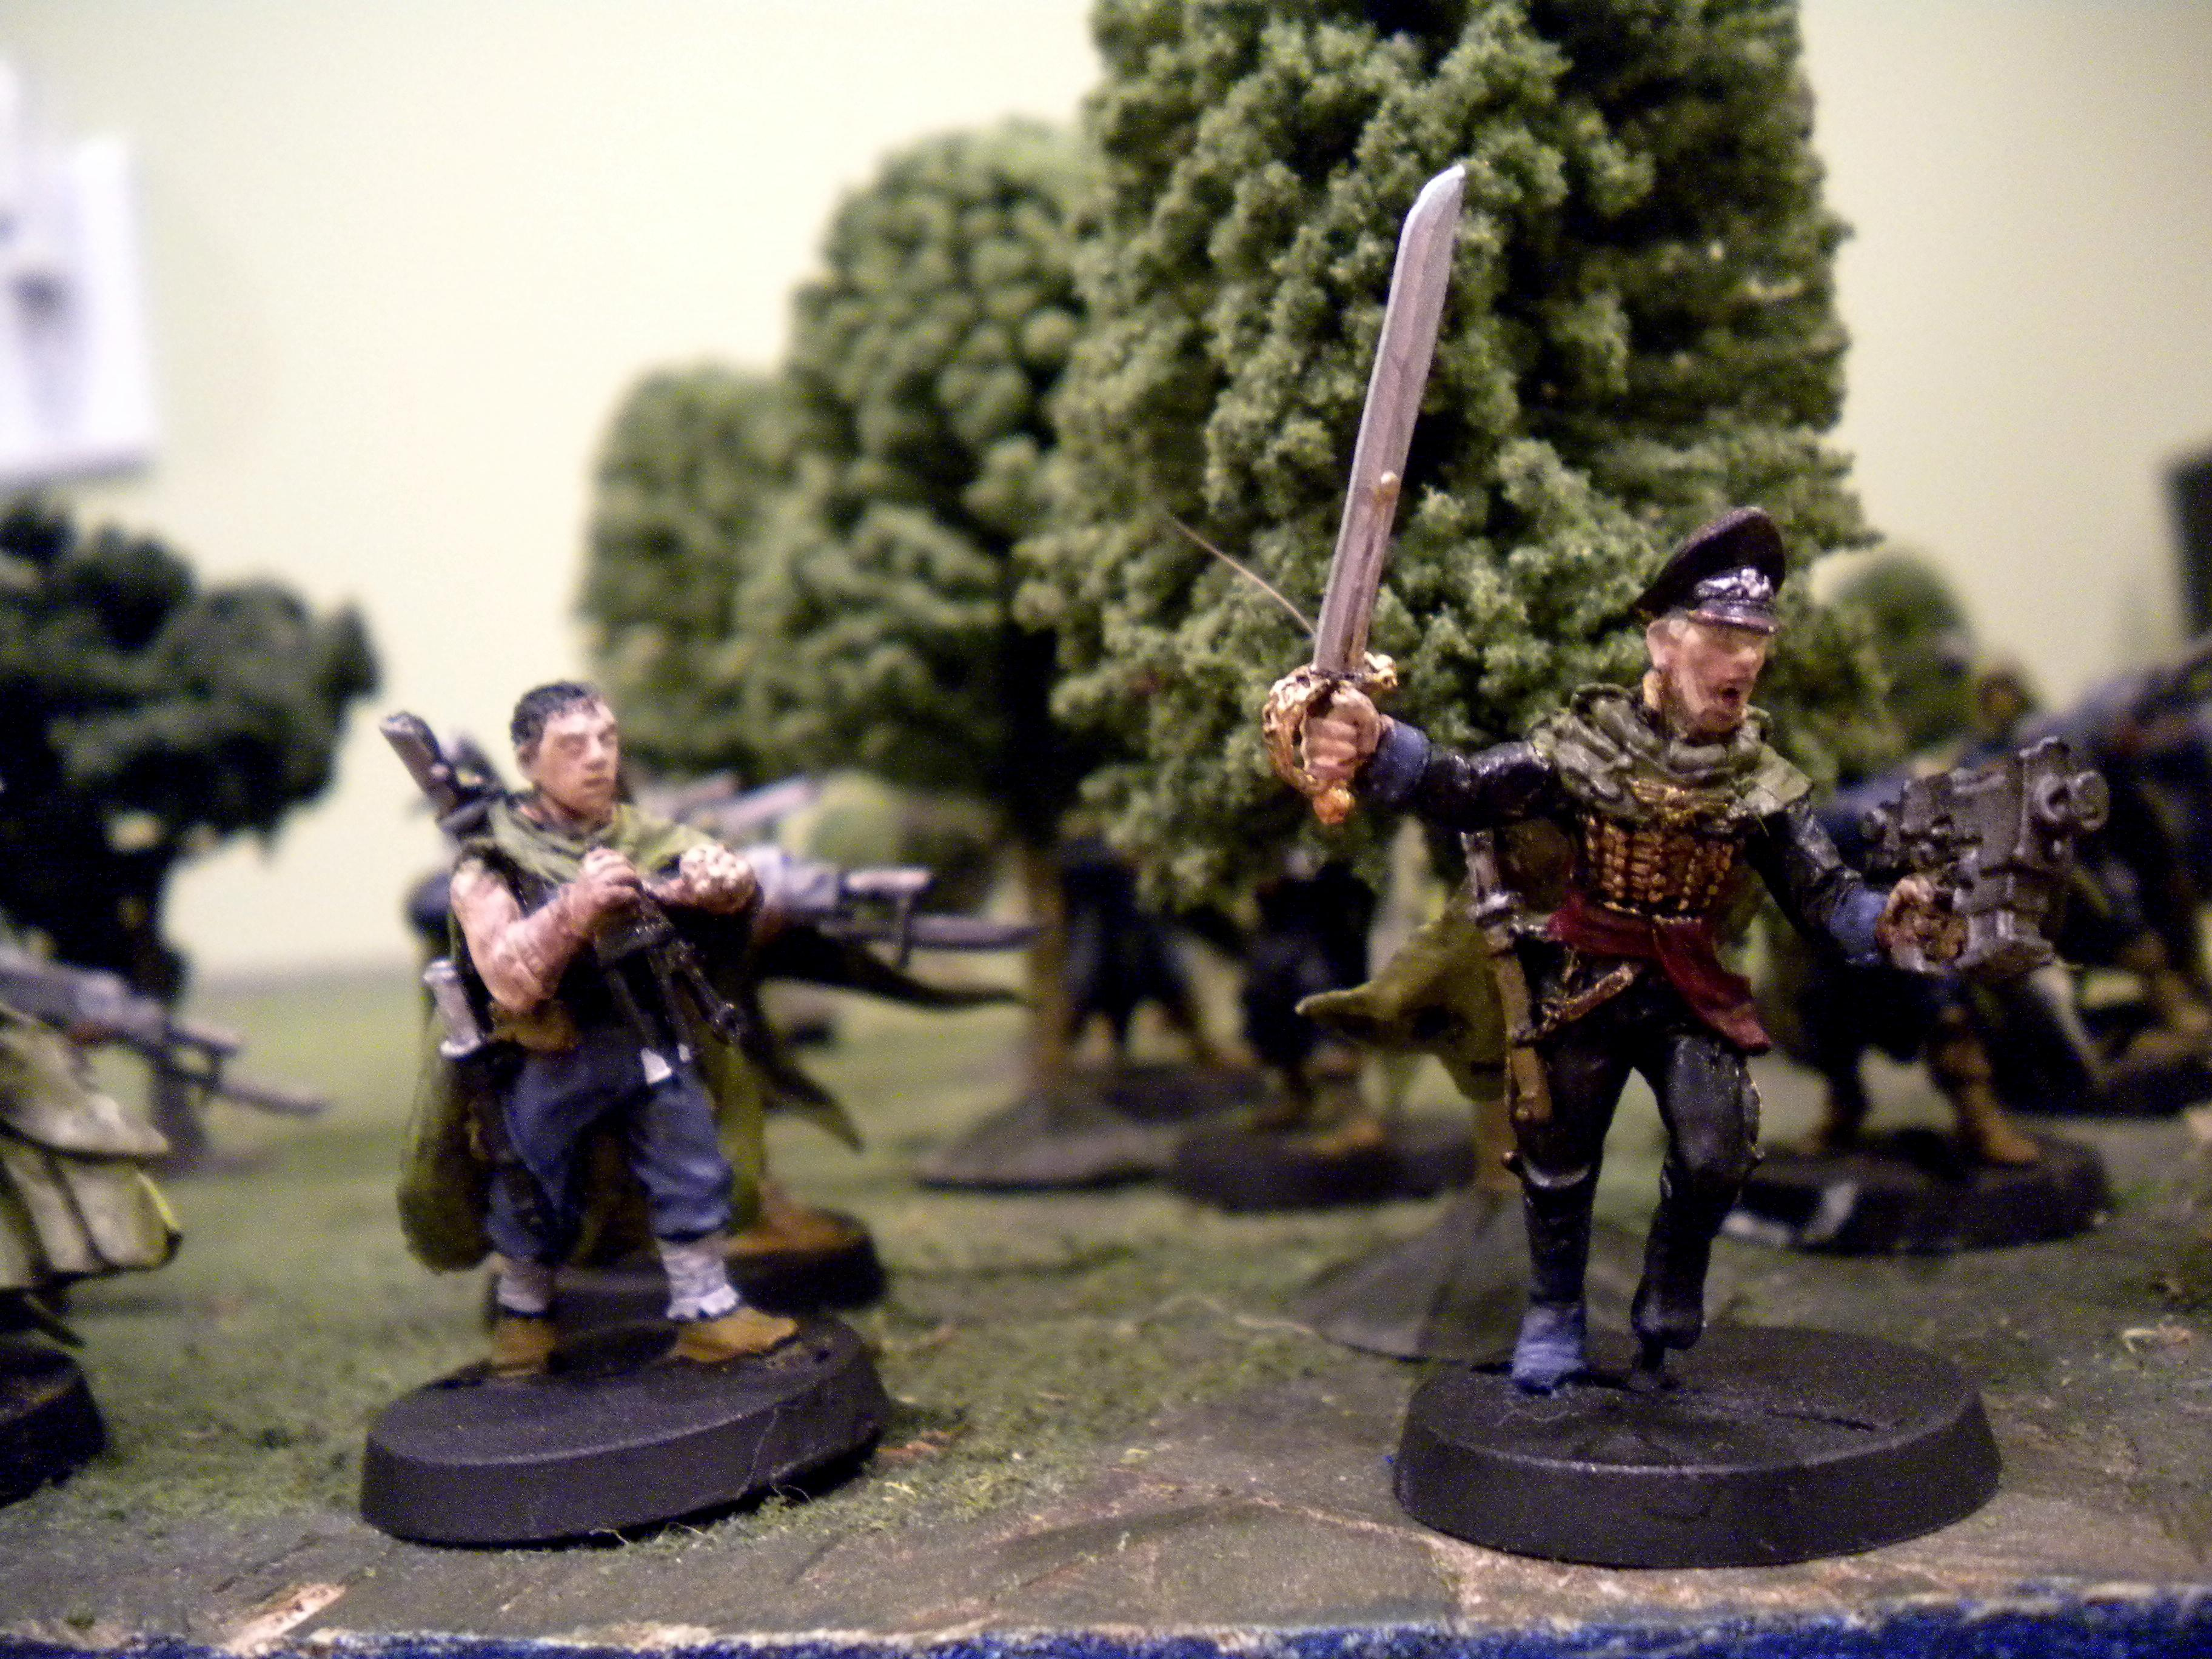 Gaunt%27s Ghosts, Gaunt's Ghosts, Imperial Guard, Tanith